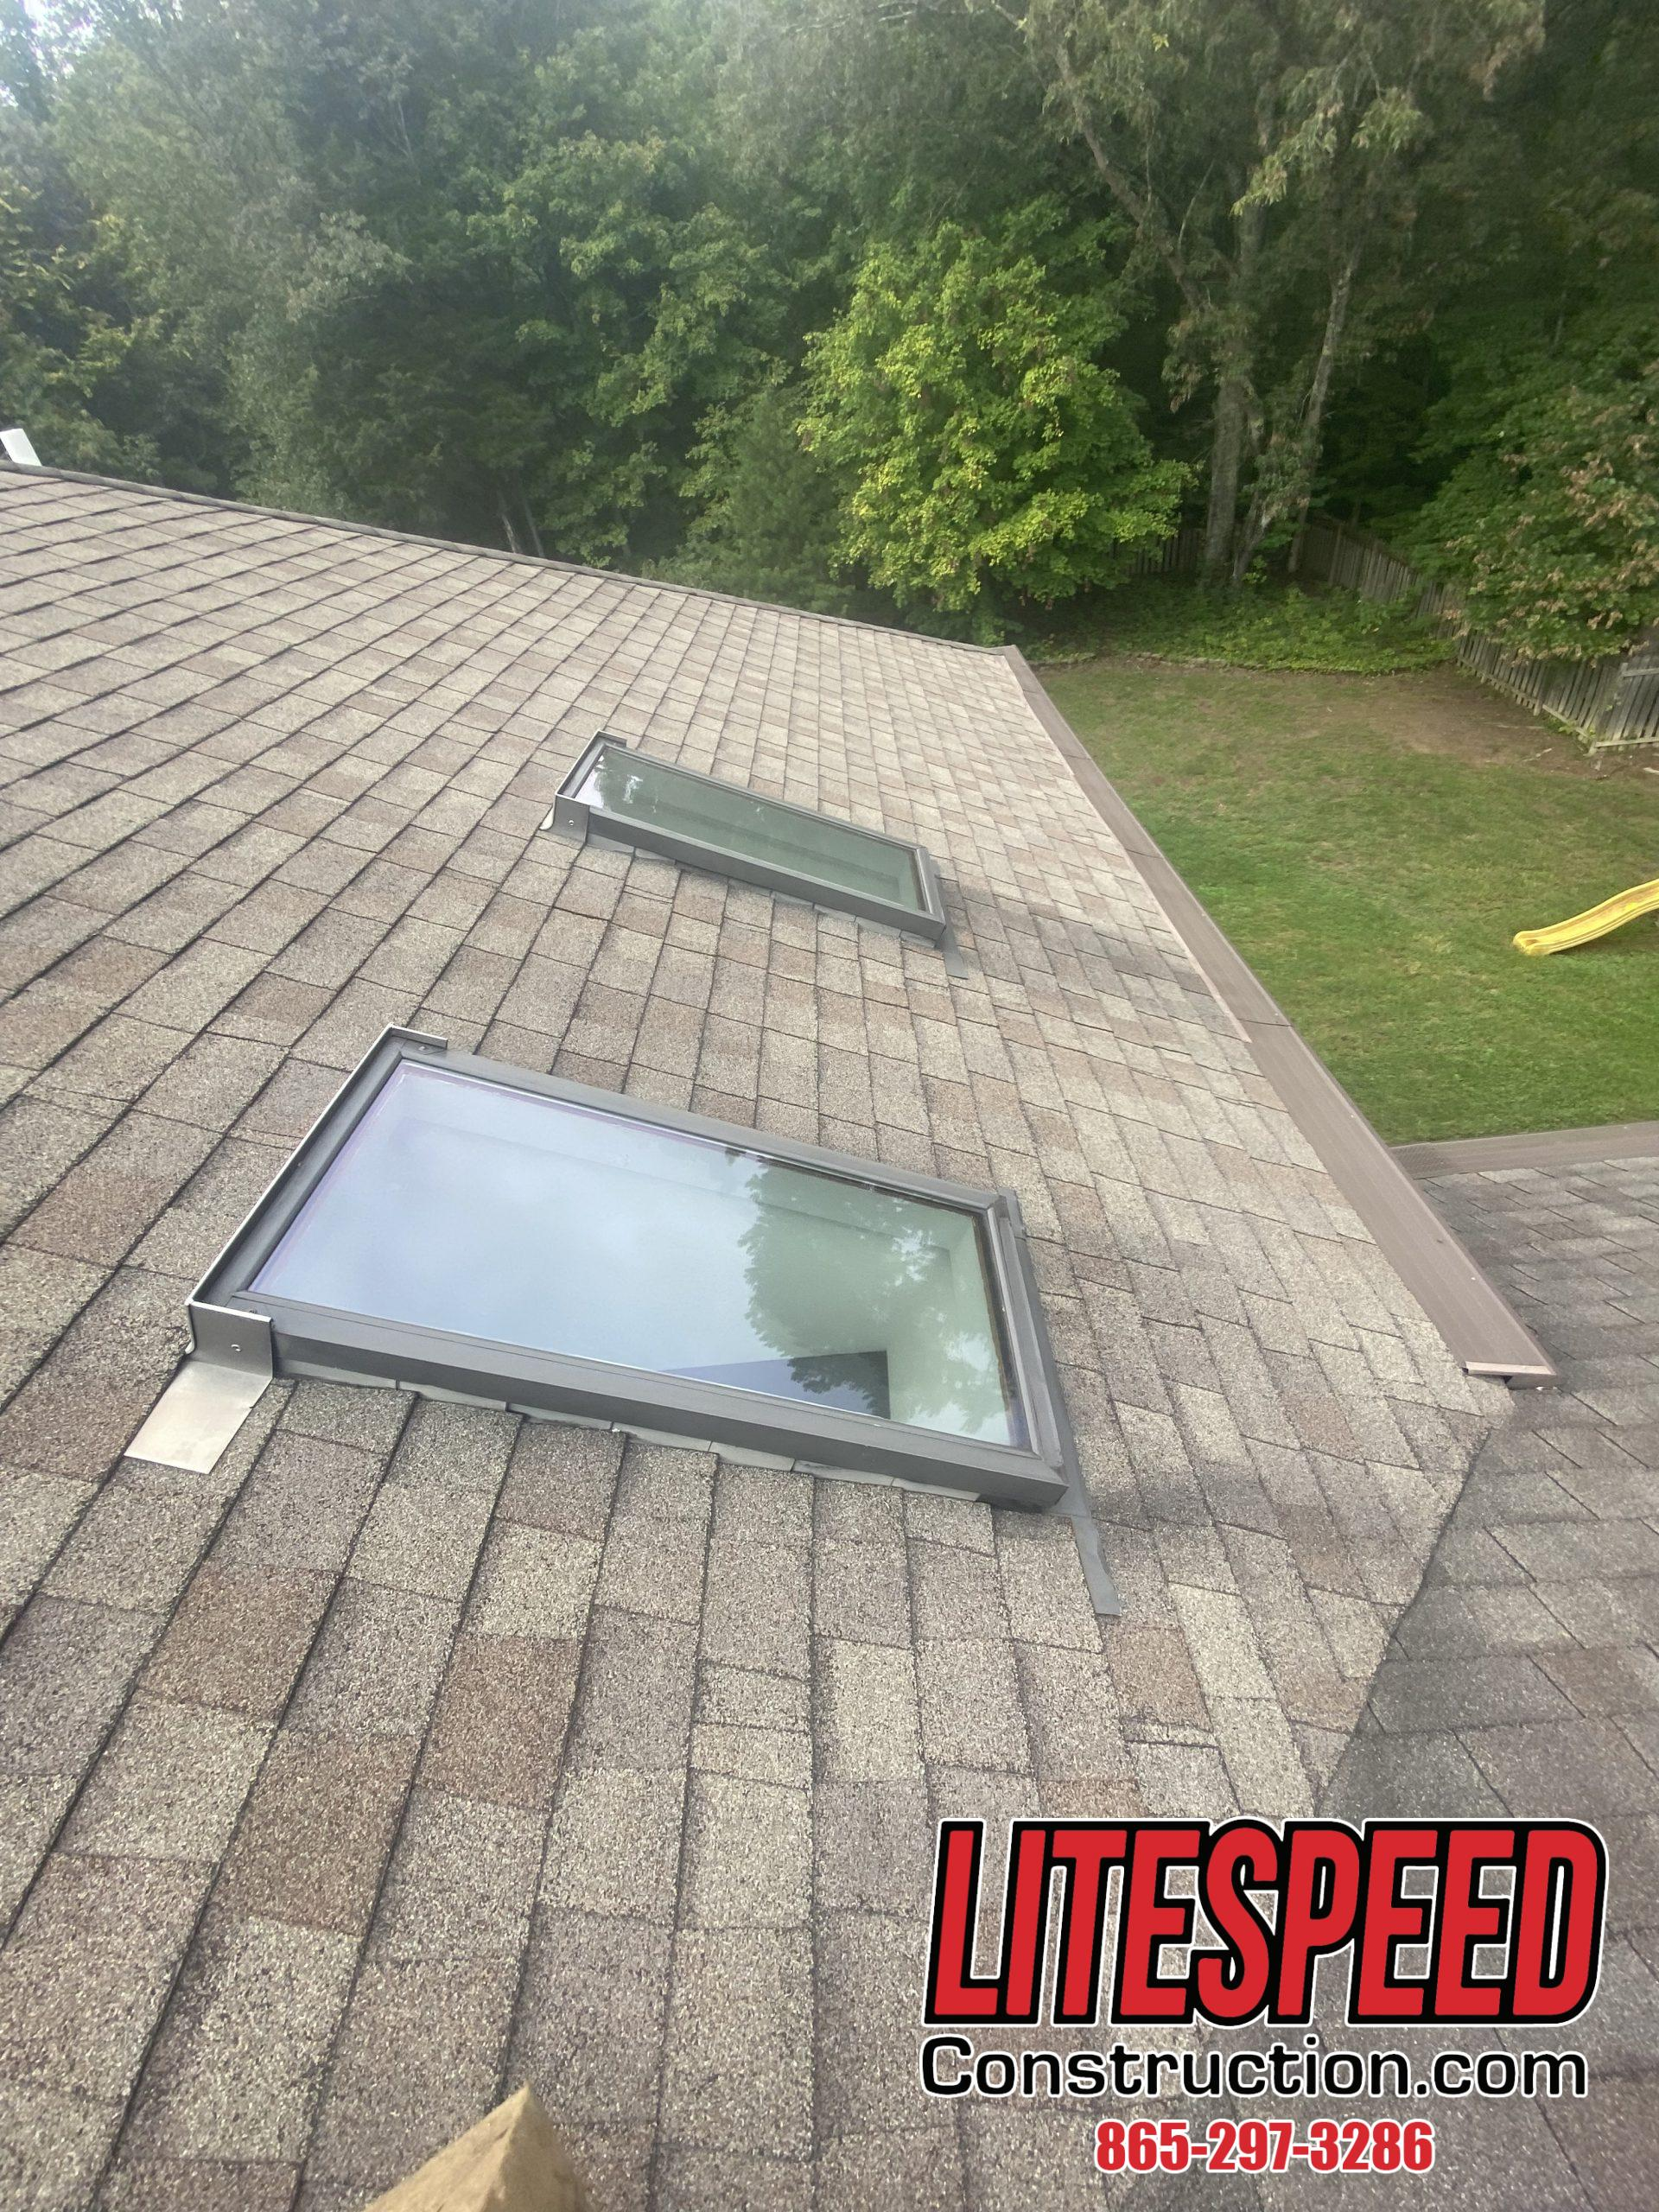 This is a picture of two skylights on a shingle roof